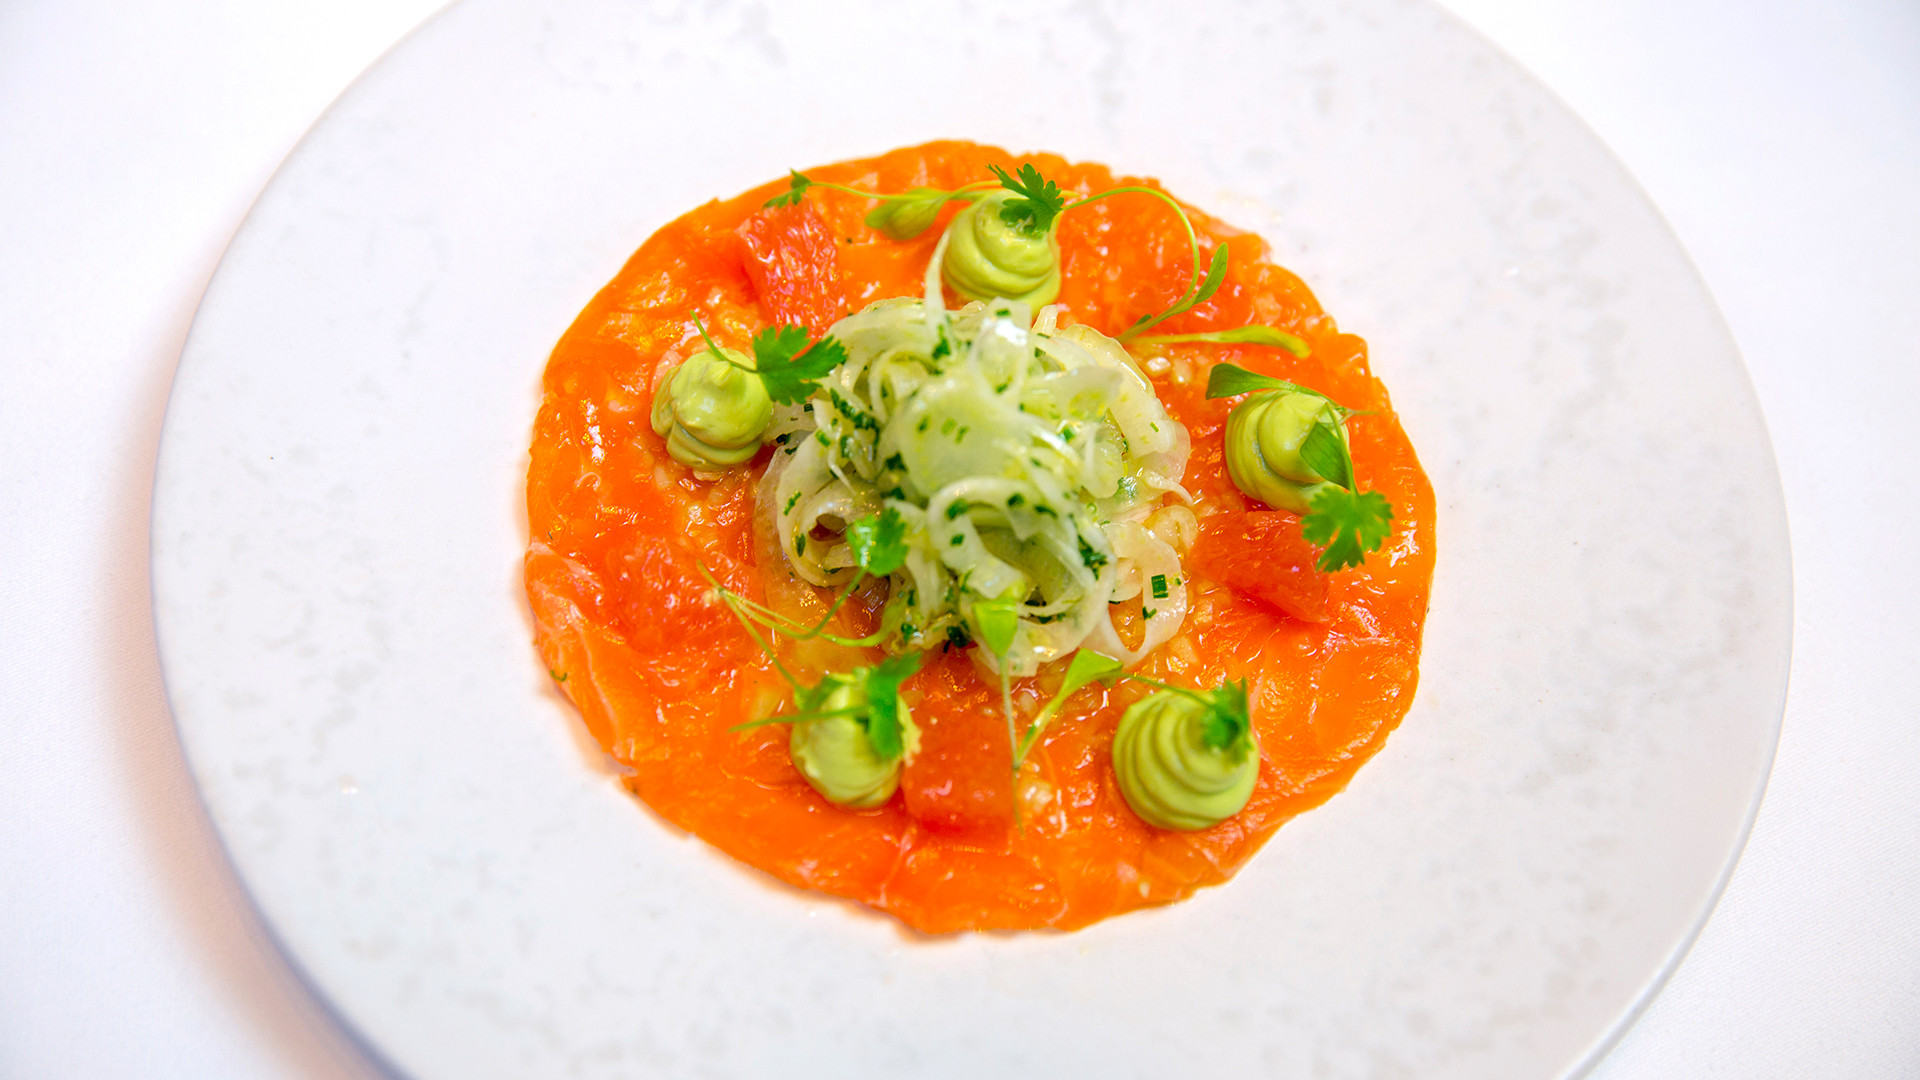 Cured Loch Duart salmon, fennel, avocado purée and ruby grapefruit